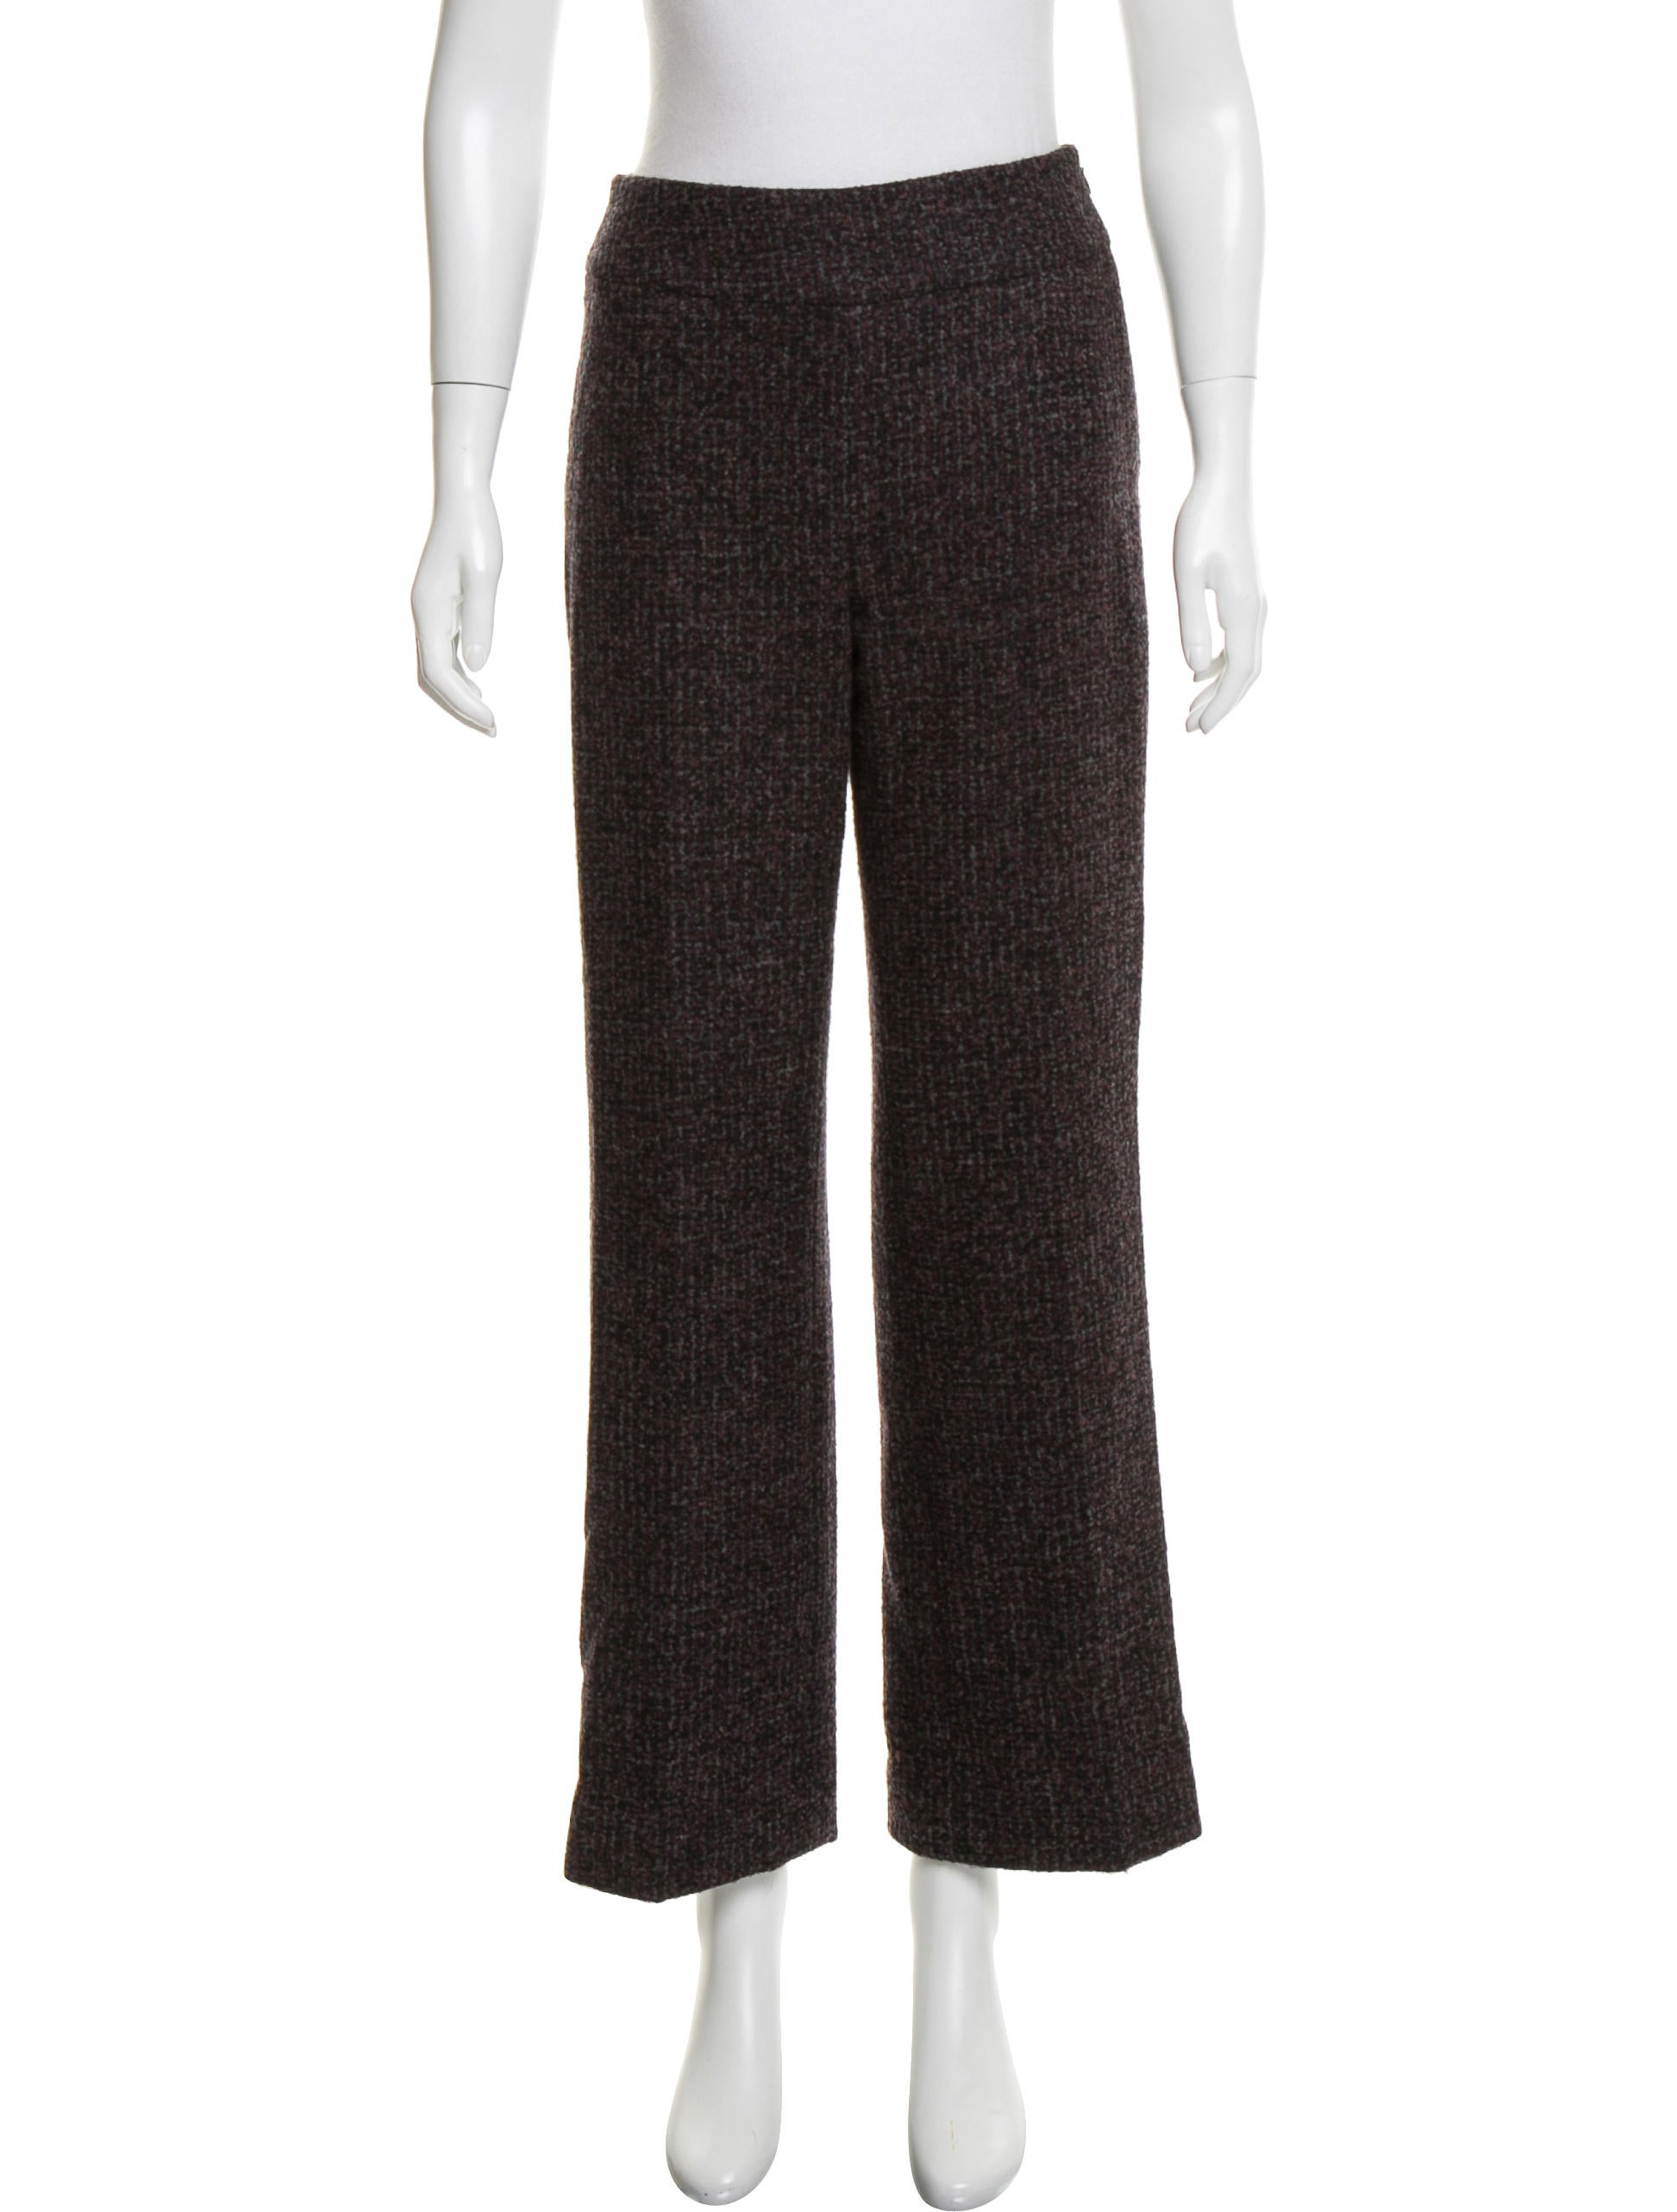 Oscar De La Renta Tweed Mid Rise Pants besides Tour Tory Burchs House H tons likewise Id V 267452 likewise Worlds Largest Collection Of Haute Couture Barbies To Exhibit In Montreal further Editors Pick Sophia Webster Leilou Stripe Leather Suede Canvas Sandals. on oscar de la renta furniture collection